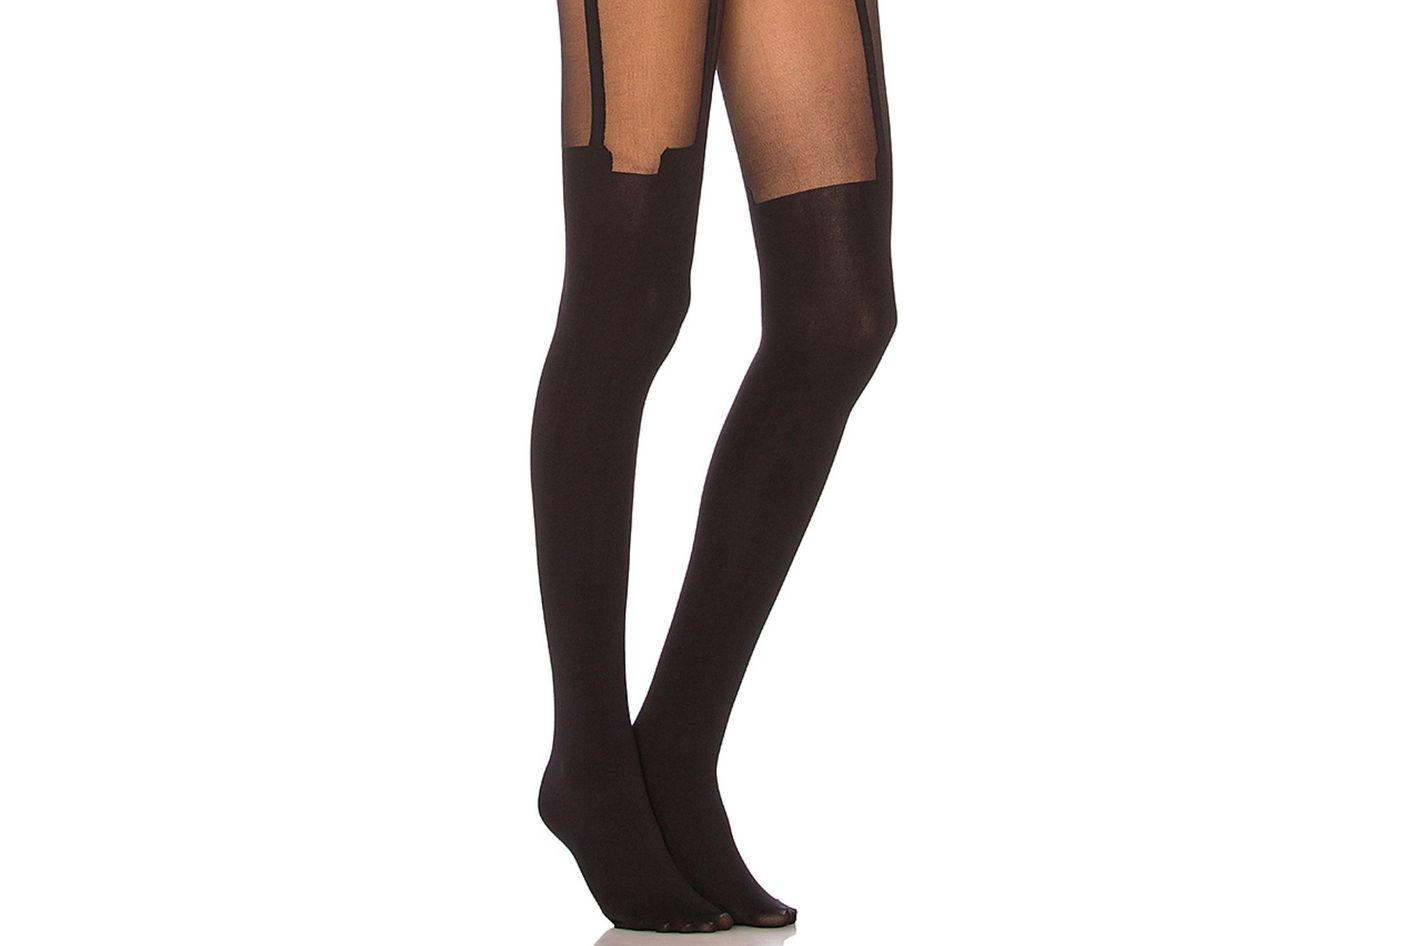 06a760bb013 Pretty Polly House of Holland Super Suspender Tights